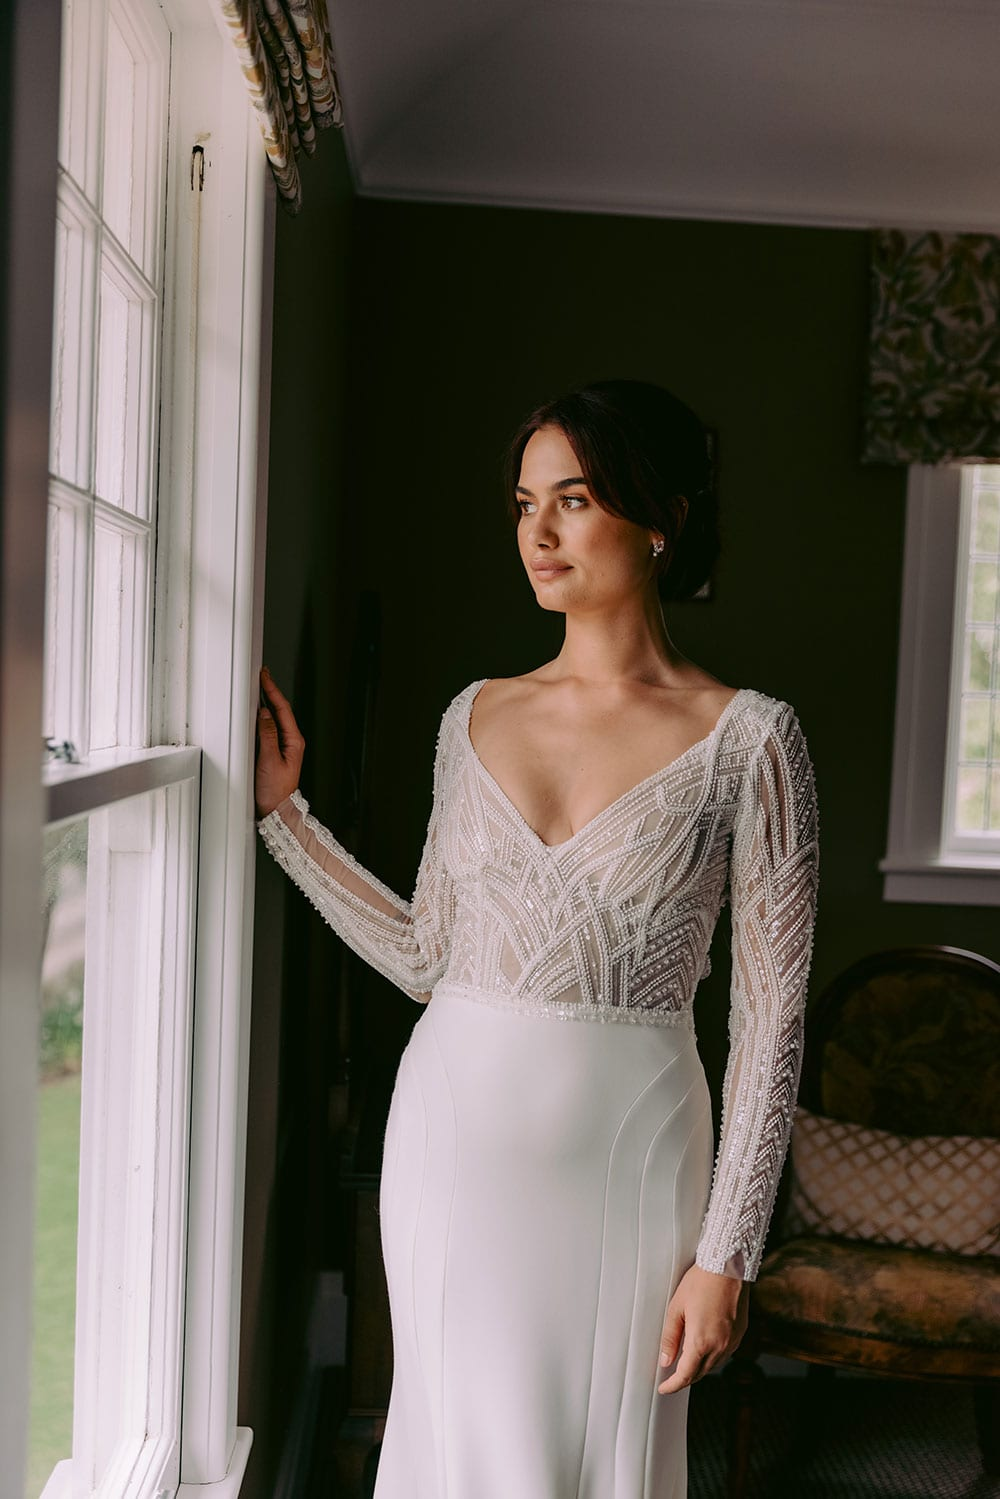 Renata Wedding gown from Vinka Design - Show stopping wedding dress with stunning beaded lace. Fitted sleeves with tiny pearl buttons and open back. Flattering lined panel skirt gently shapes the hips and sculpts into a beautiful flared train. Model wearing gown looking out of window, showing close up detail of lace detail of top.